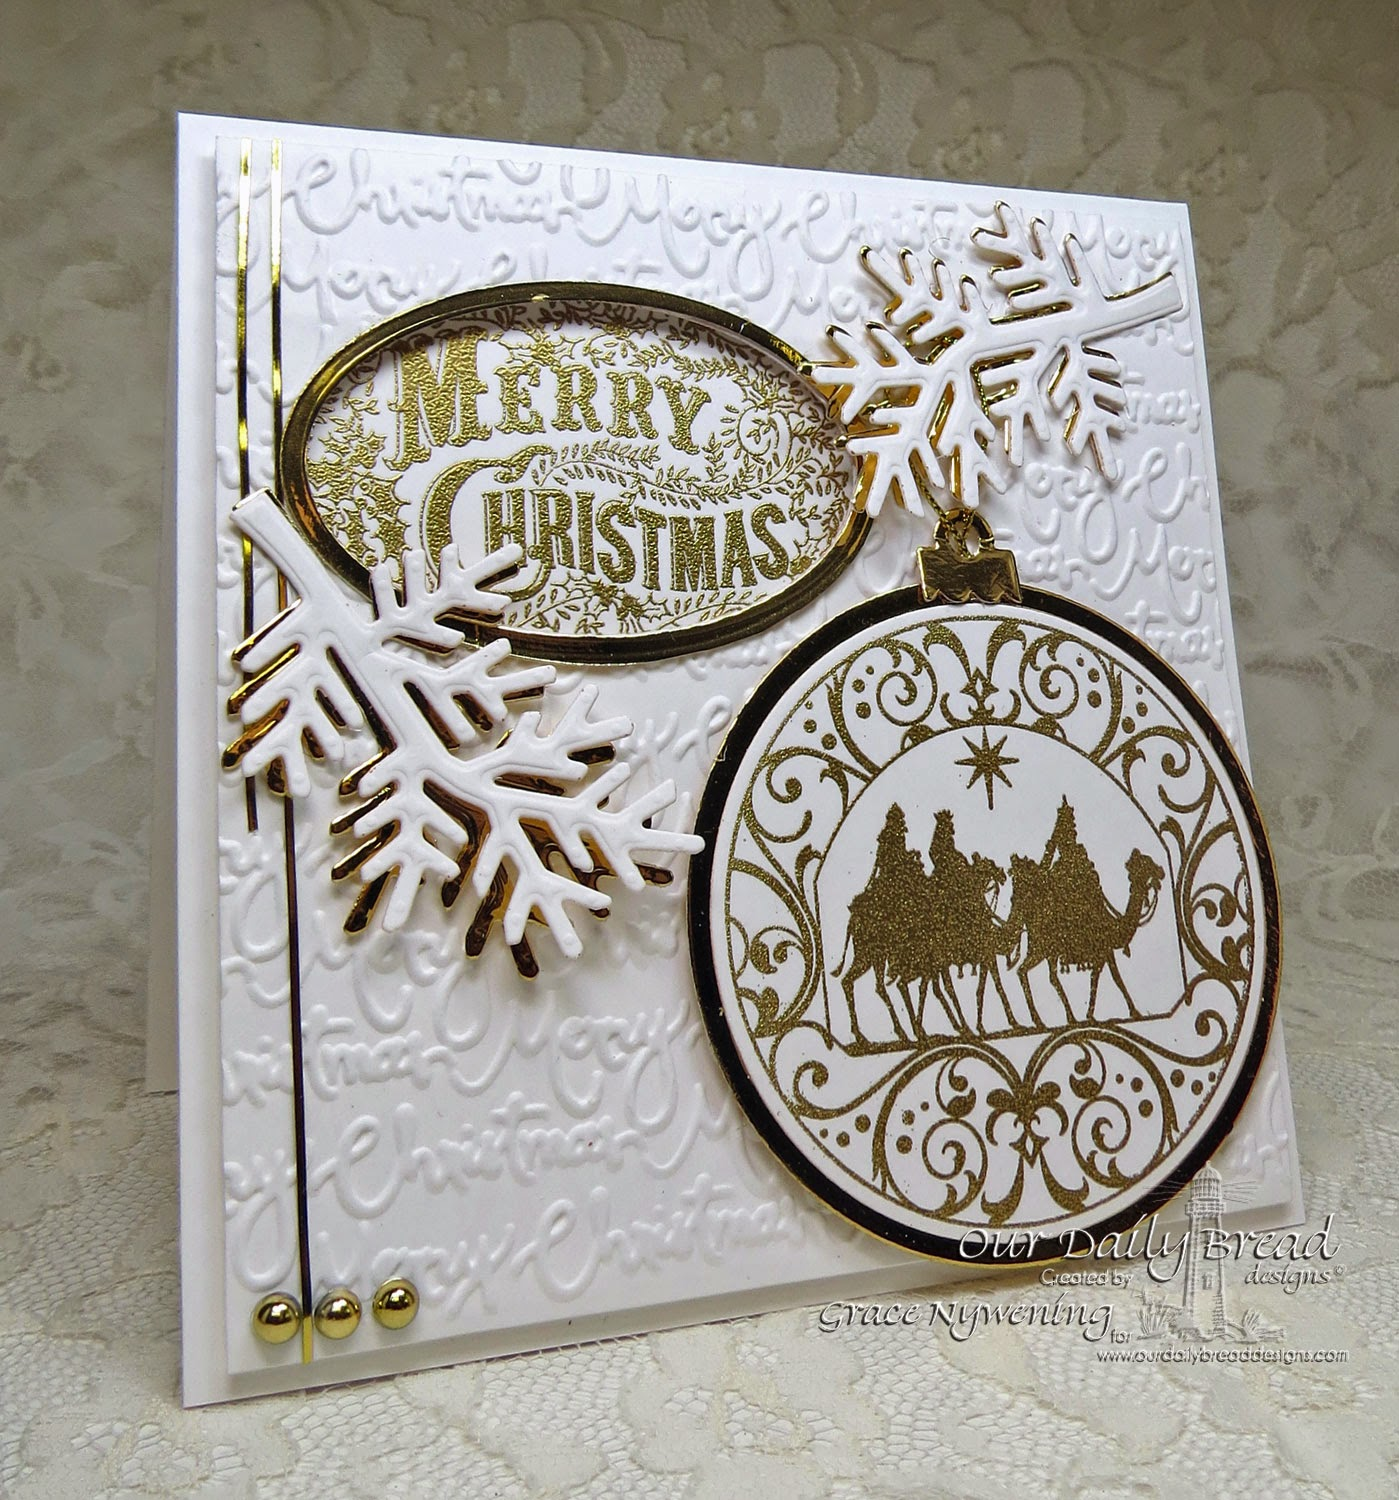 ODBD stamps: Merry Christmas Ornament, Wisemen Ornament, designed by Grace Nywening